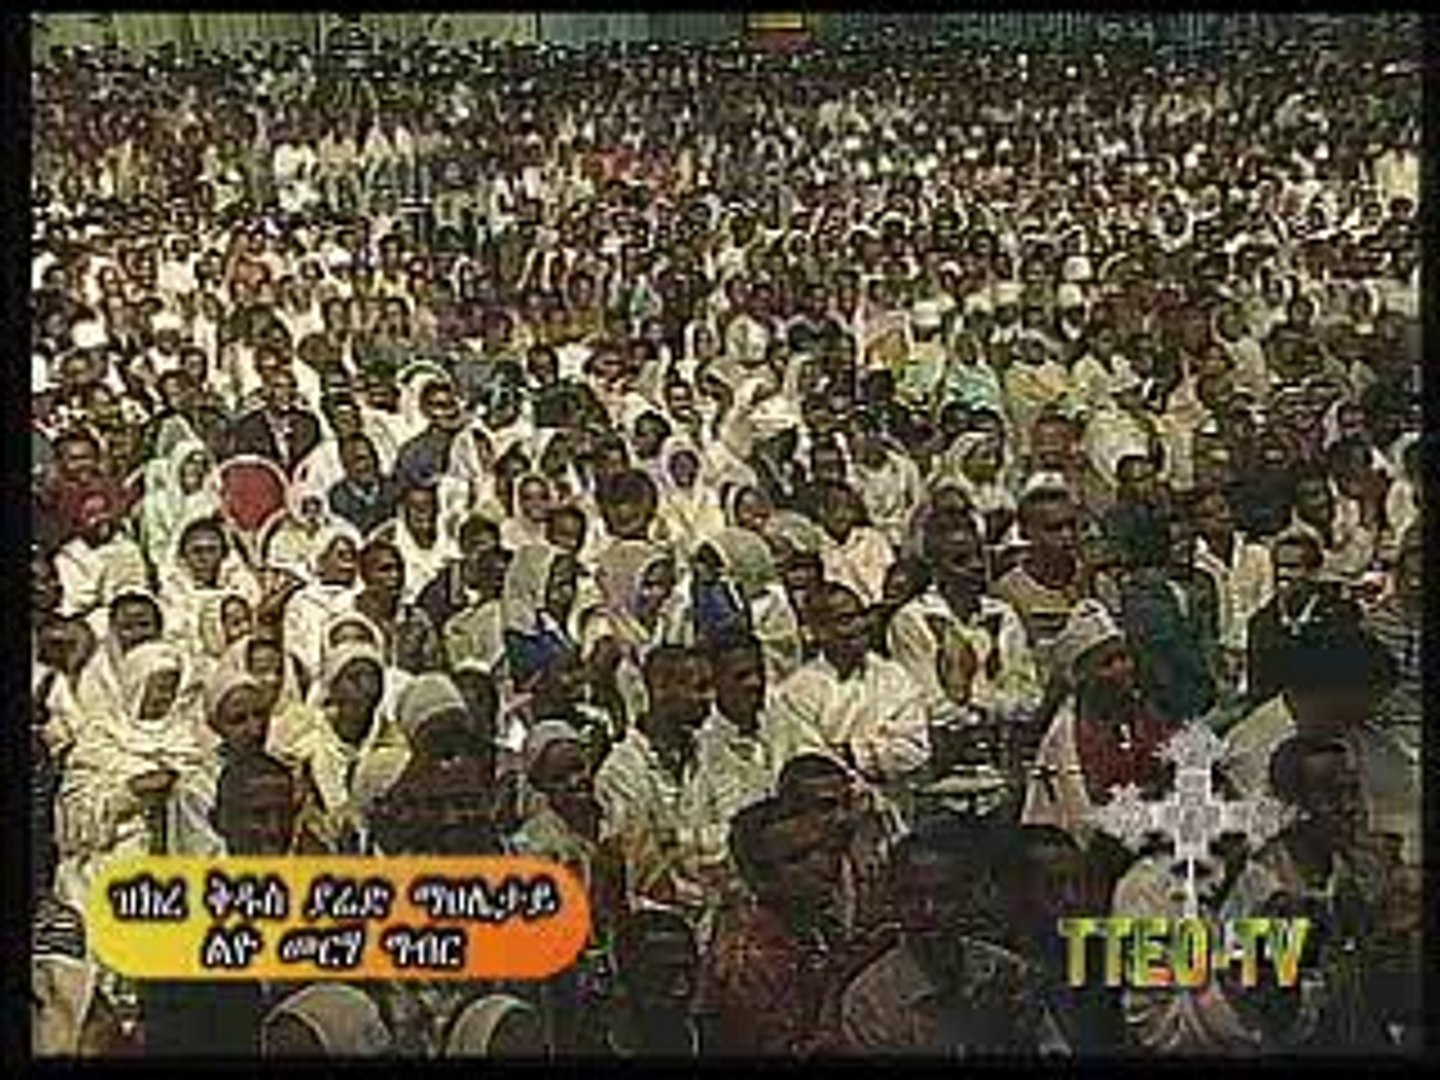 St,Yared Memorial Service Addis Ababa, Ethiopia TTEOTV 16-17